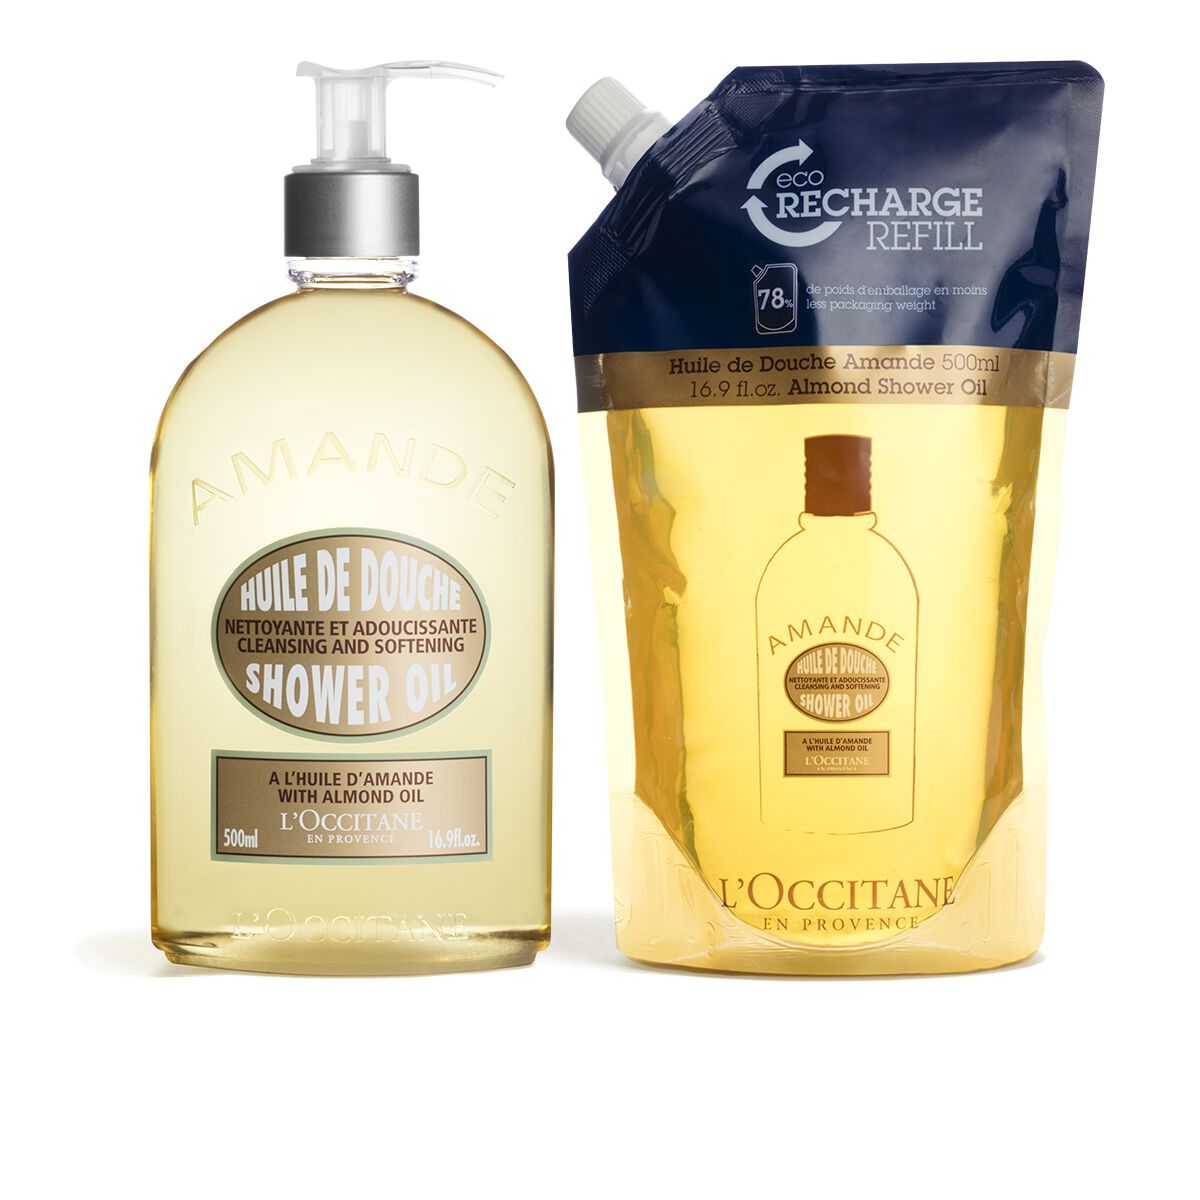 Almond Shower Refill Duo from L'OCCITANE